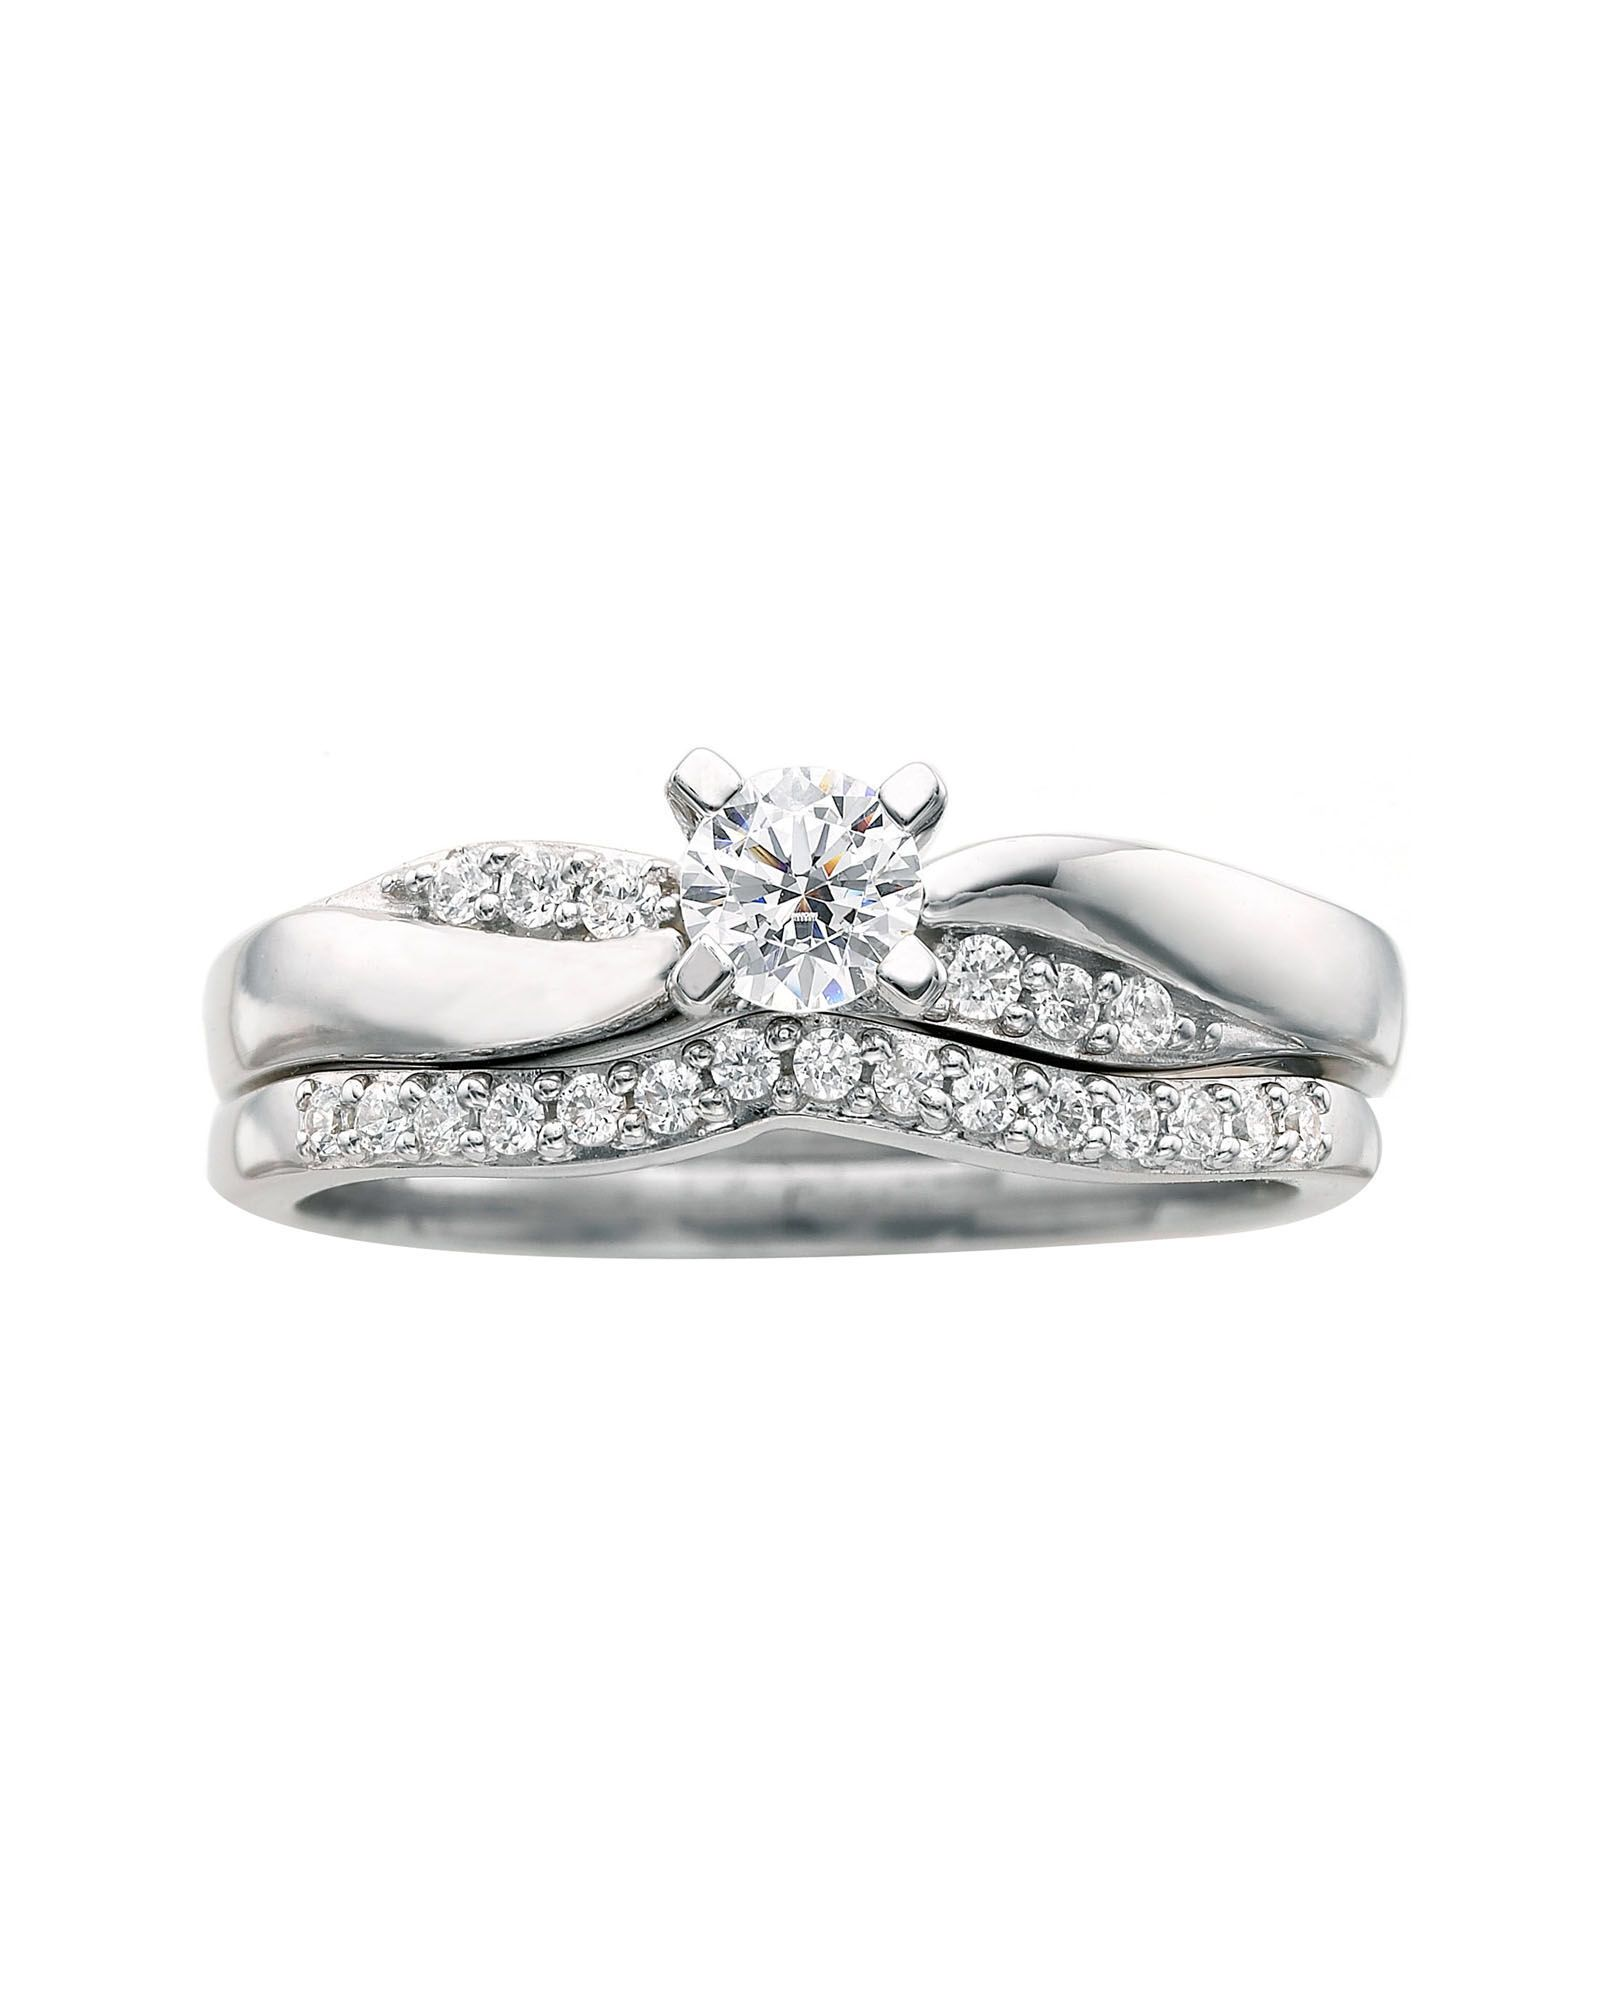 I Said Yes™ 3 8 CT T W Diamond Bridal Ring Set by JCPenney on